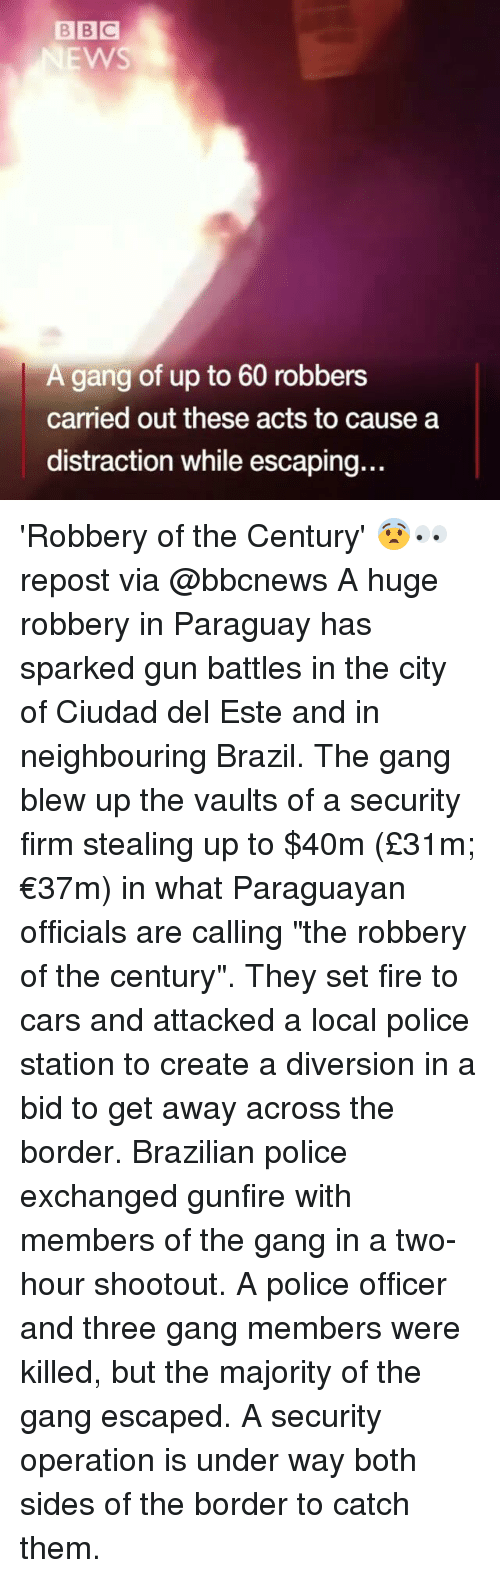 """Cars, Fire, and Memes: BBC  EWS  A gang of up to 60 robbers  carried out these acts to cause a  distraction while escaping.. 'Robbery of the Century' 😨👀 repost via @bbcnews A huge robbery in Paraguay has sparked gun battles in the city of Ciudad del Este and in neighbouring Brazil. The gang blew up the vaults of a security firm stealing up to $40m (£31m; €37m) in what Paraguayan officials are calling """"the robbery of the century"""". They set fire to cars and attacked a local police station to create a diversion in a bid to get away across the border. Brazilian police exchanged gunfire with members of the gang in a two-hour shootout. A police officer and three gang members were killed, but the majority of the gang escaped. A security operation is under way both sides of the border to catch them."""